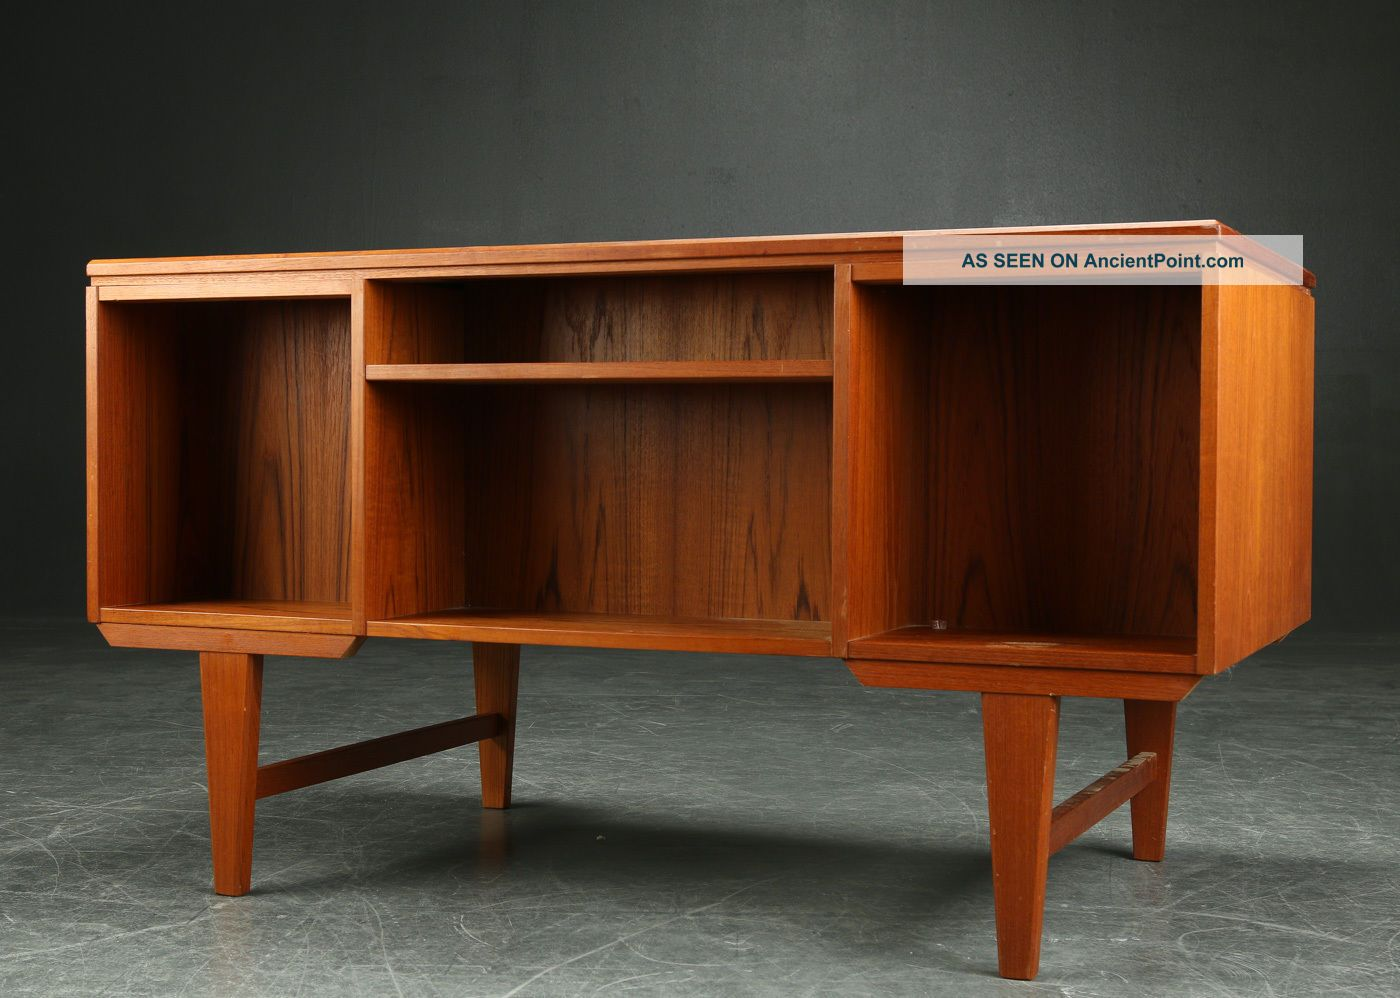 Marvelous photograph of Vintage Danish Teak Writing Desk 1950 60s 1900 1950 photo 2 with #B14F16 color and 1400x998 pixels